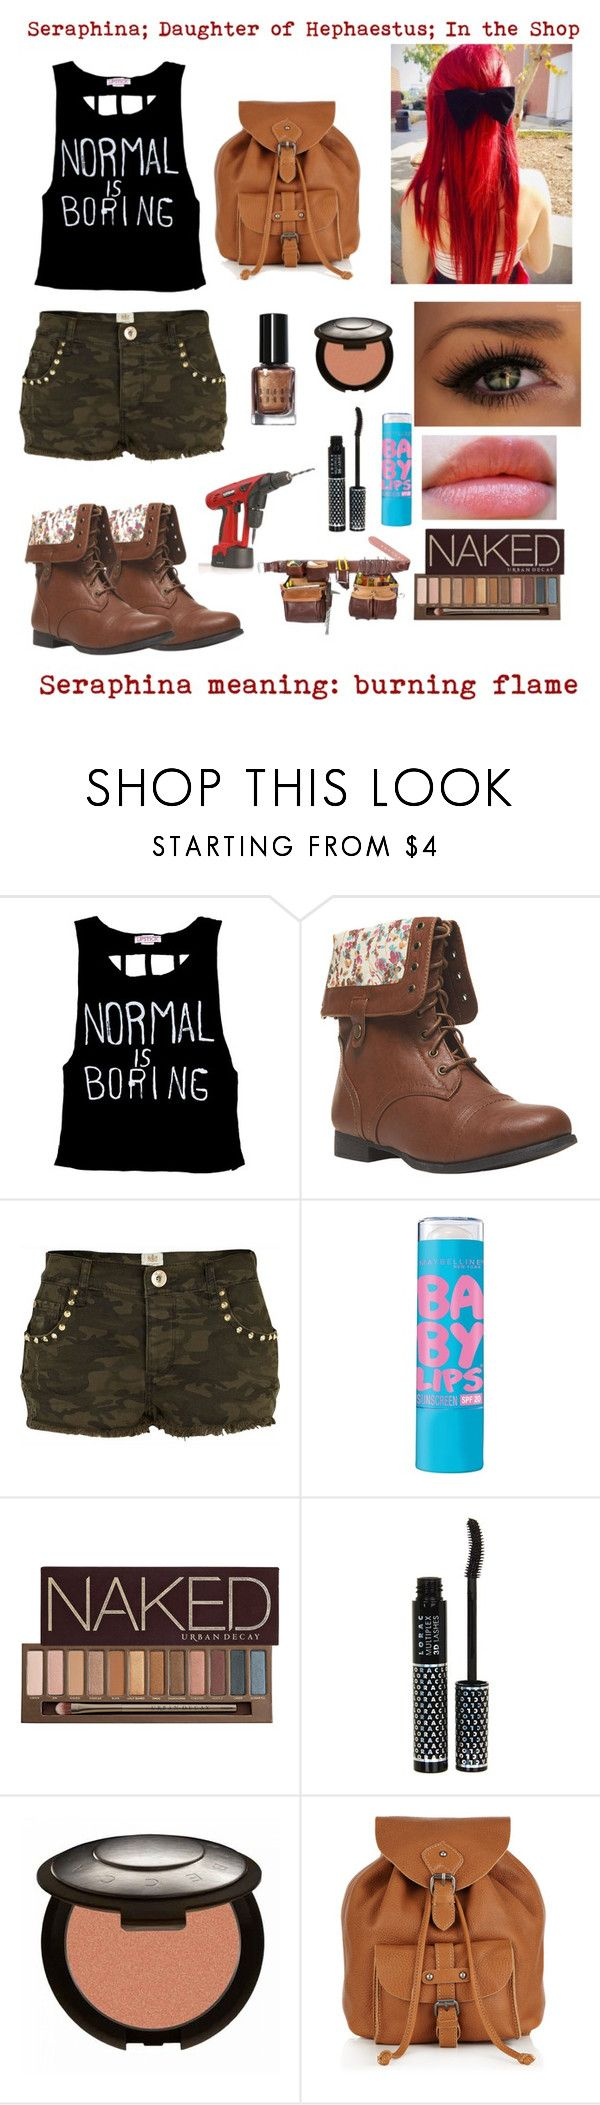 """""""Daughter of Hephaestus"""" by demigodoutfitters ❤ liked on Polyvore featuring Wet Seal, River Island, Revlon, Maybelline, Urban Decay, LORAC, Jigsaw, Bobbi Brown Cosmetics and Hudson Jeans"""